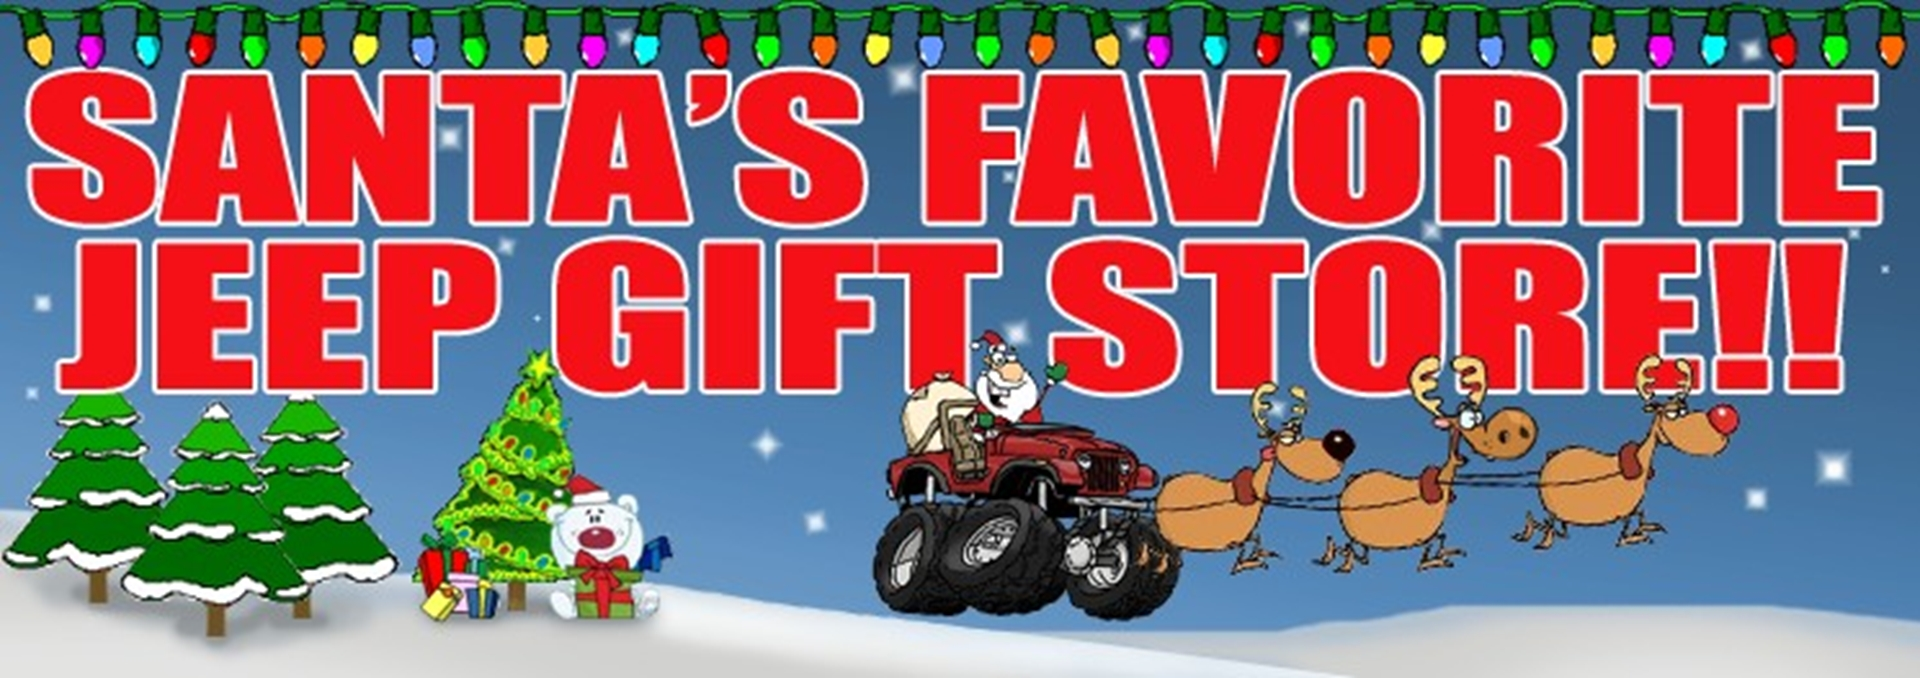 Jeep Christmas Gifts and Merchandise now on sale